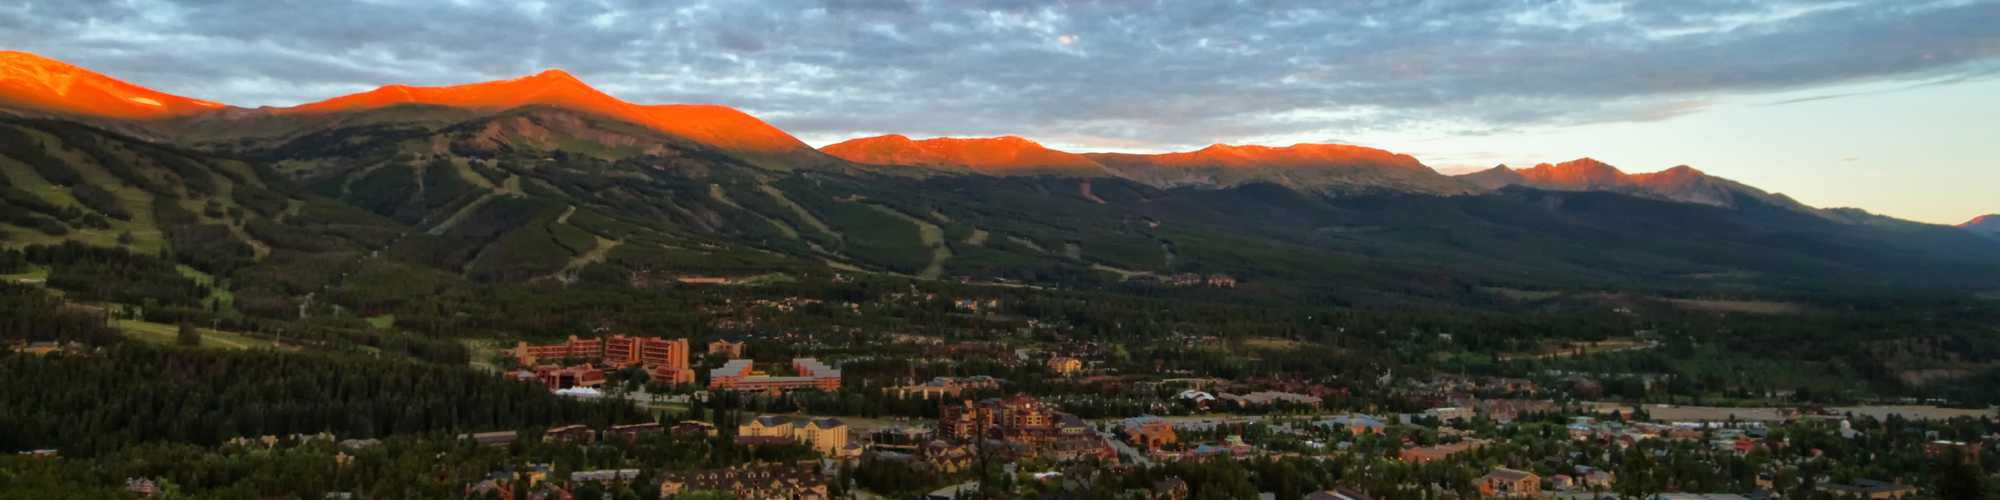 Town of Breck in summer